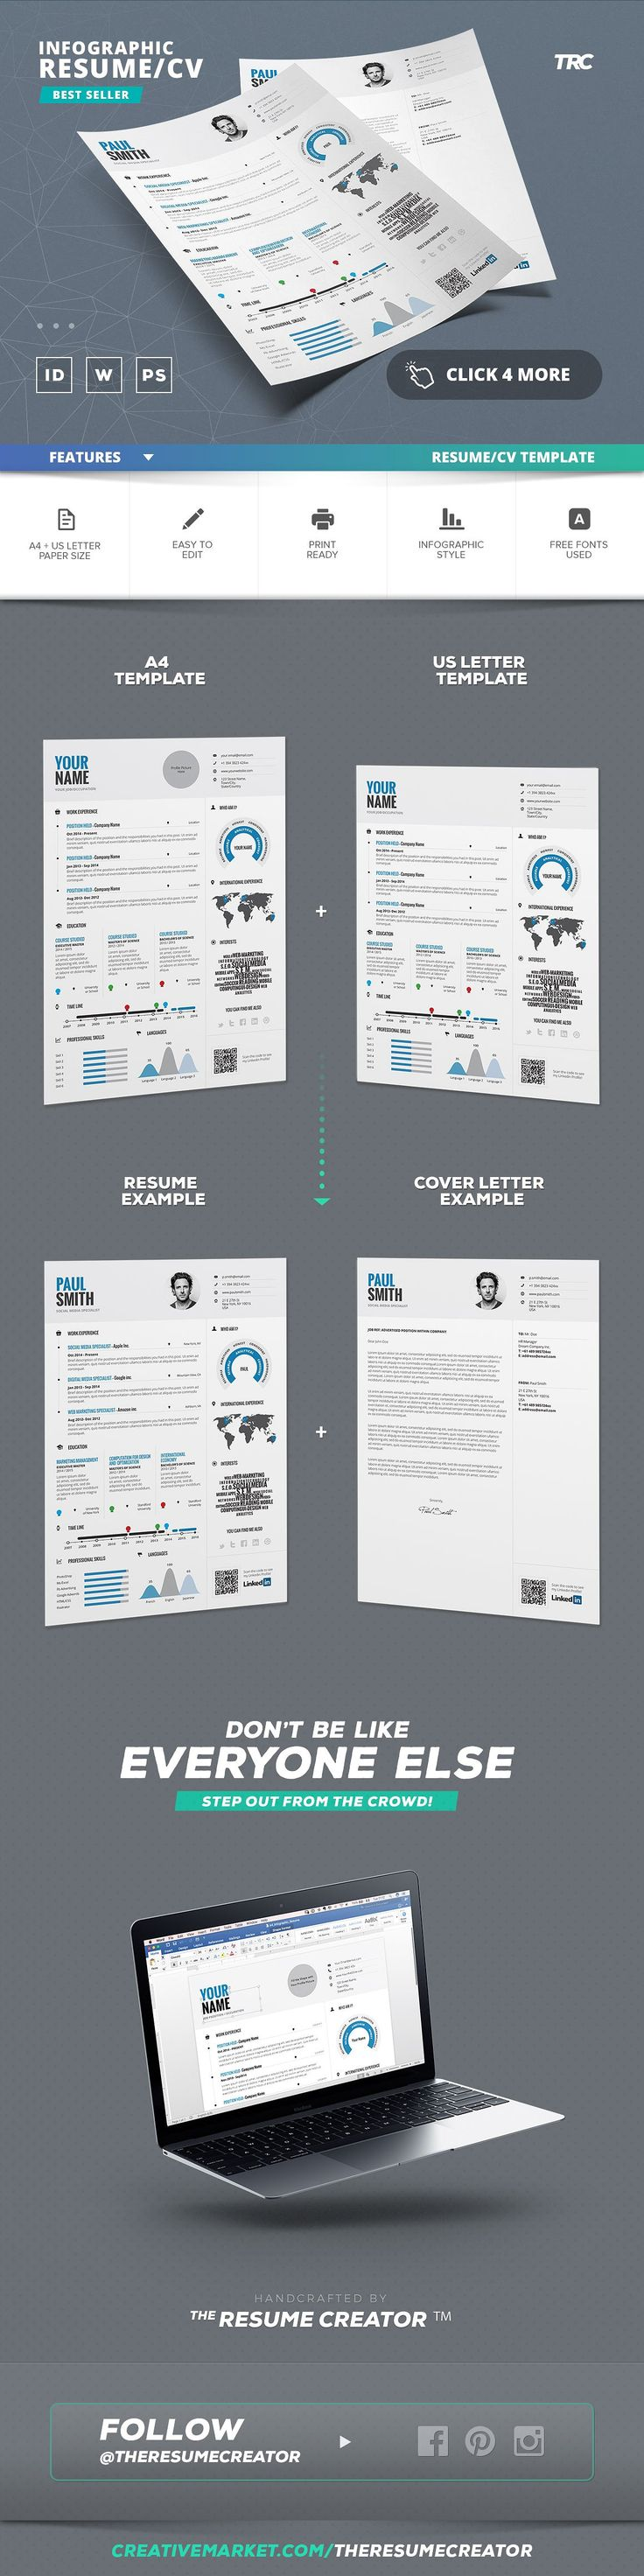 good objective on a resume%0A Infographic Resume Cv Template Vol   by TheResumeCreator on  creativemarket